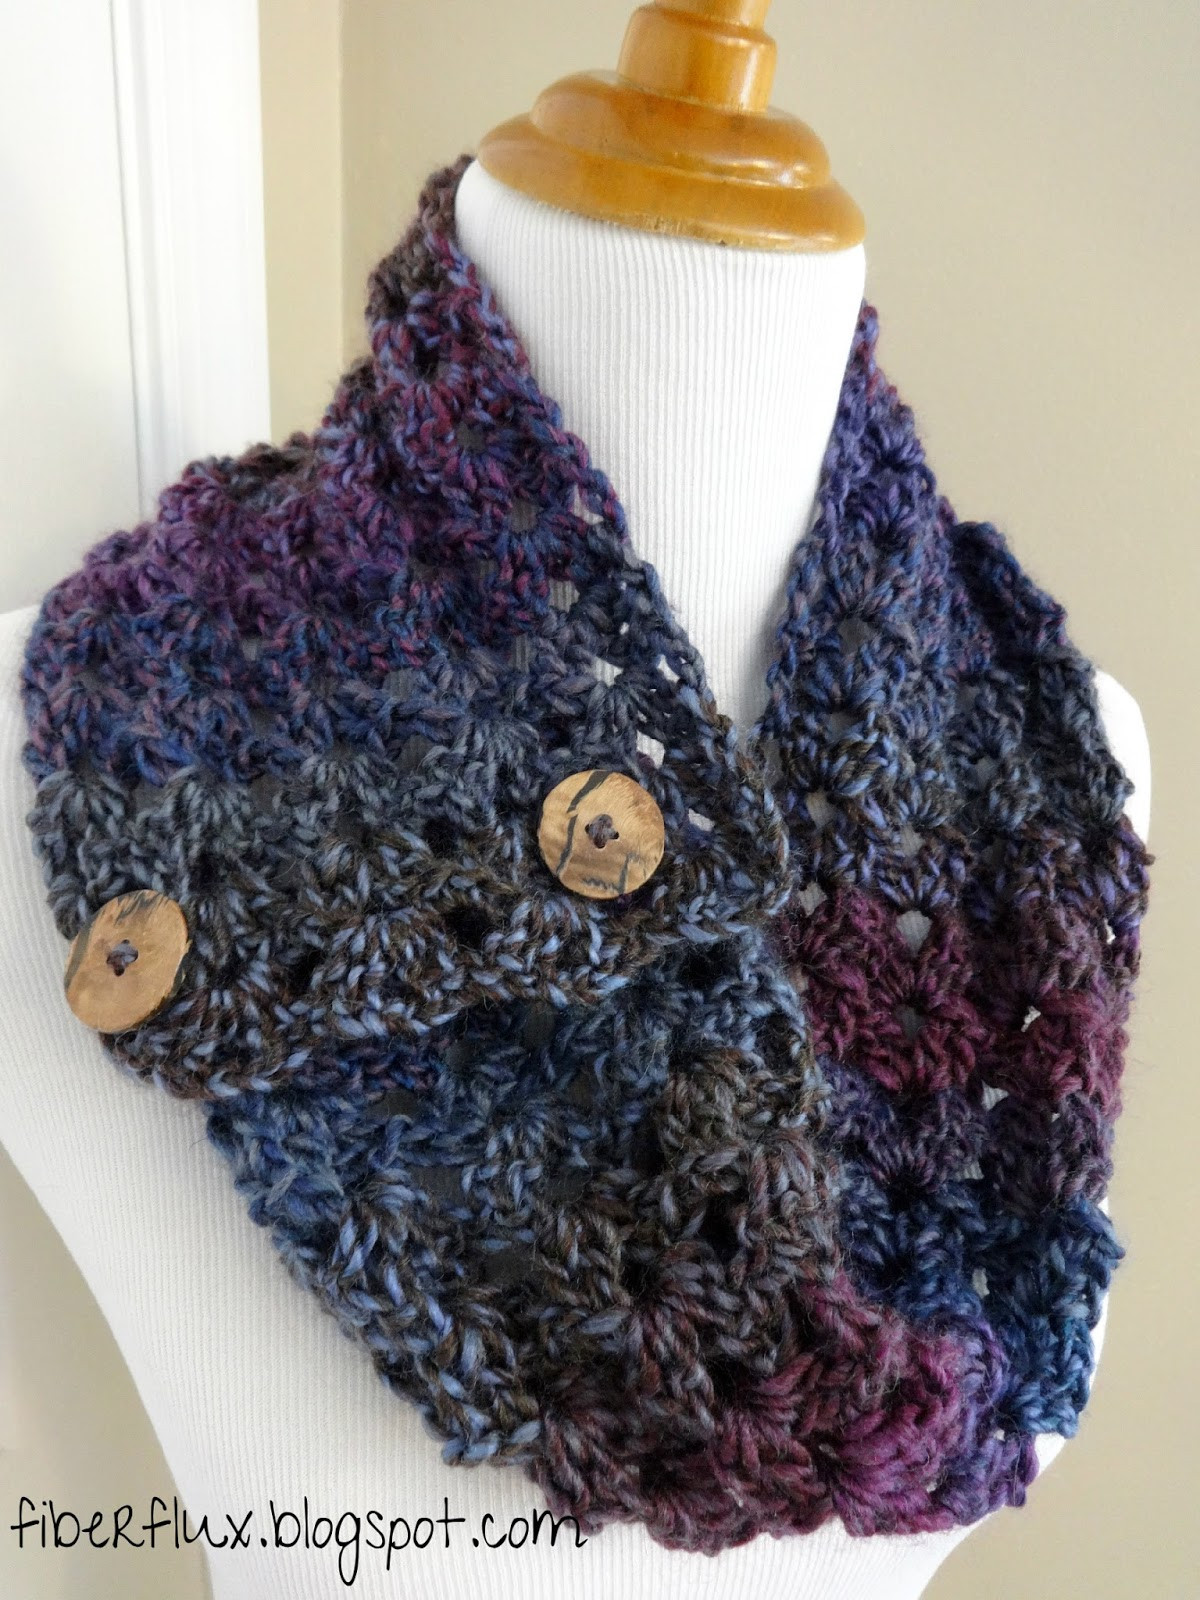 New some Free Crochet Cowl Patterns to Make A Crochet Cowl Easy Crochet Cowl Pattern Of Fresh 48 Models Easy Crochet Cowl Pattern